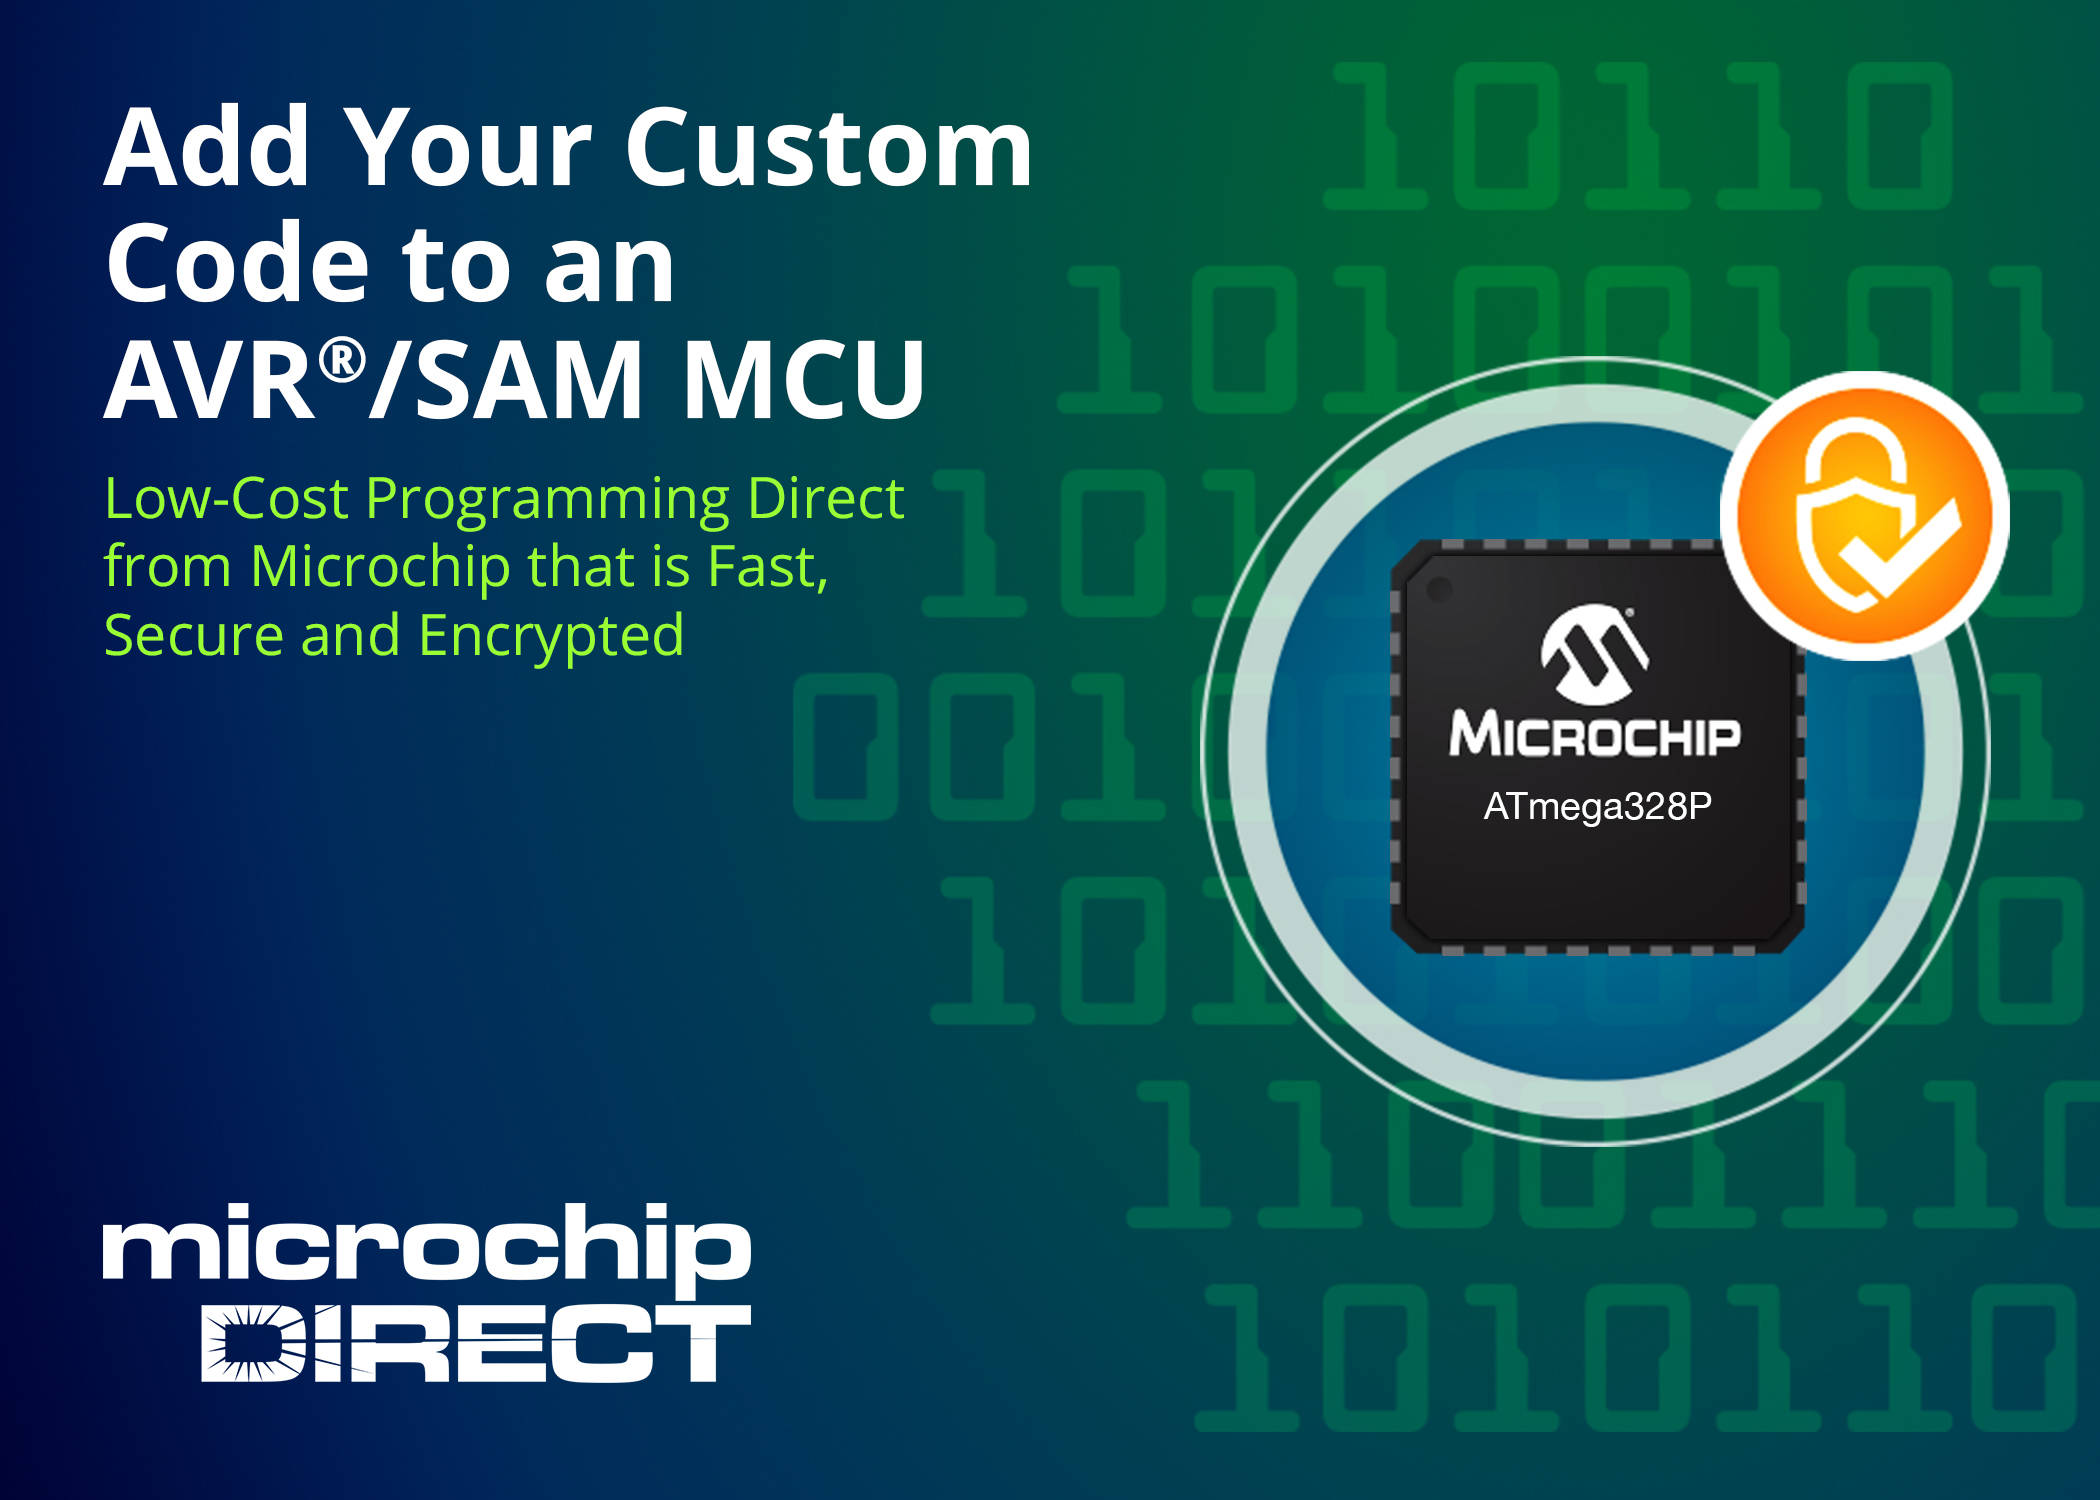 microchipDIRECT AVR and SAM MCU Custom Programming